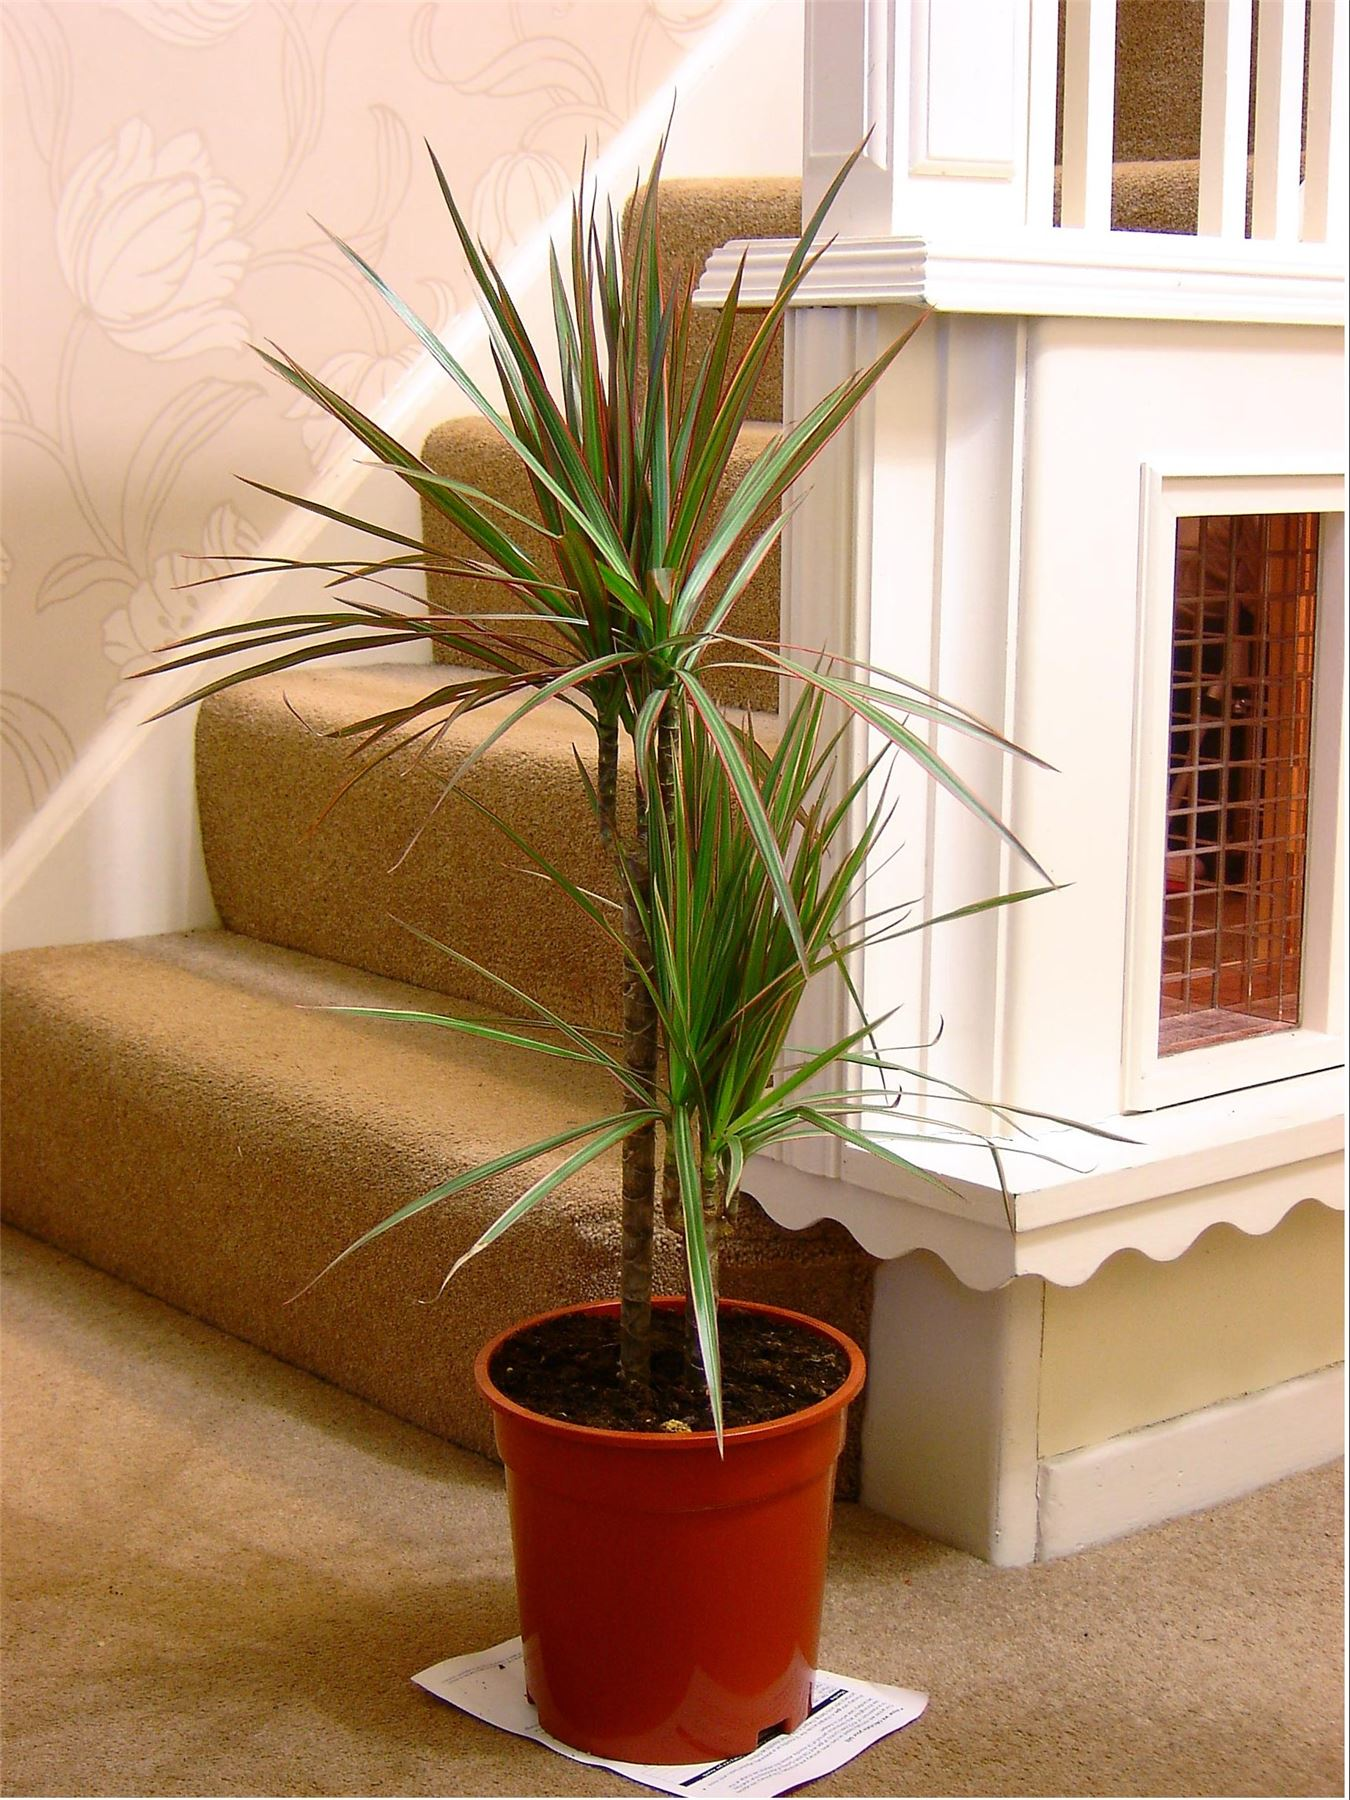 EasyPlants-TRADITIONAL-EVERGREEN-INDOOR-PLANT-GARDEN-TREE-POT-HOUSE-OFFICE